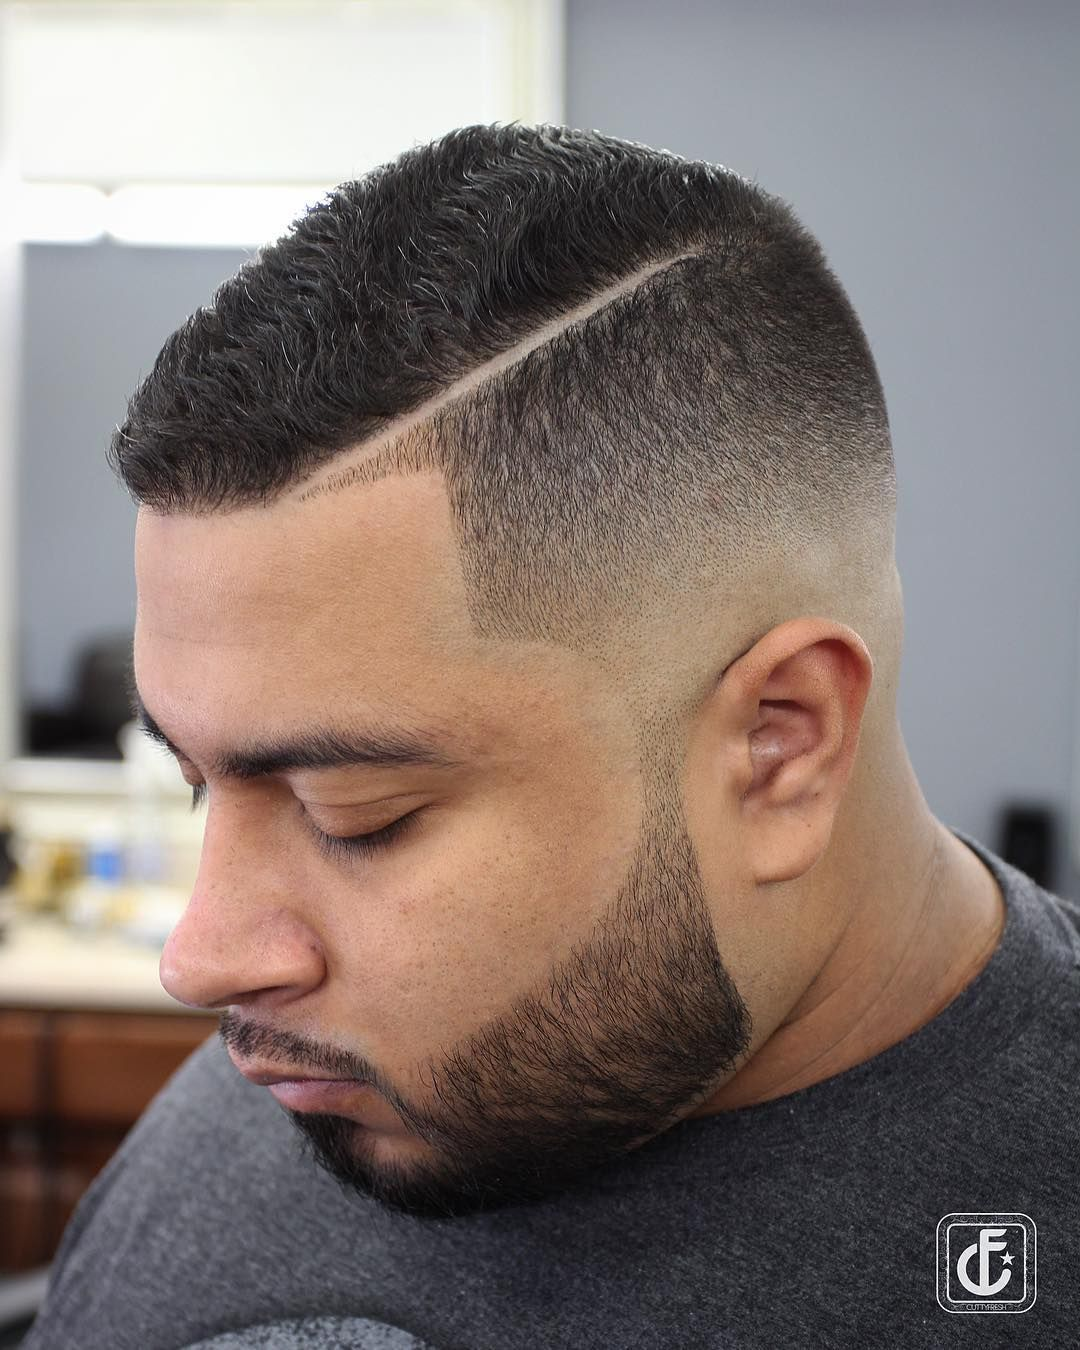 Top 100 Men's Haircuts 2019 | Cheveux homme, Coiffure homme, Coupe ...